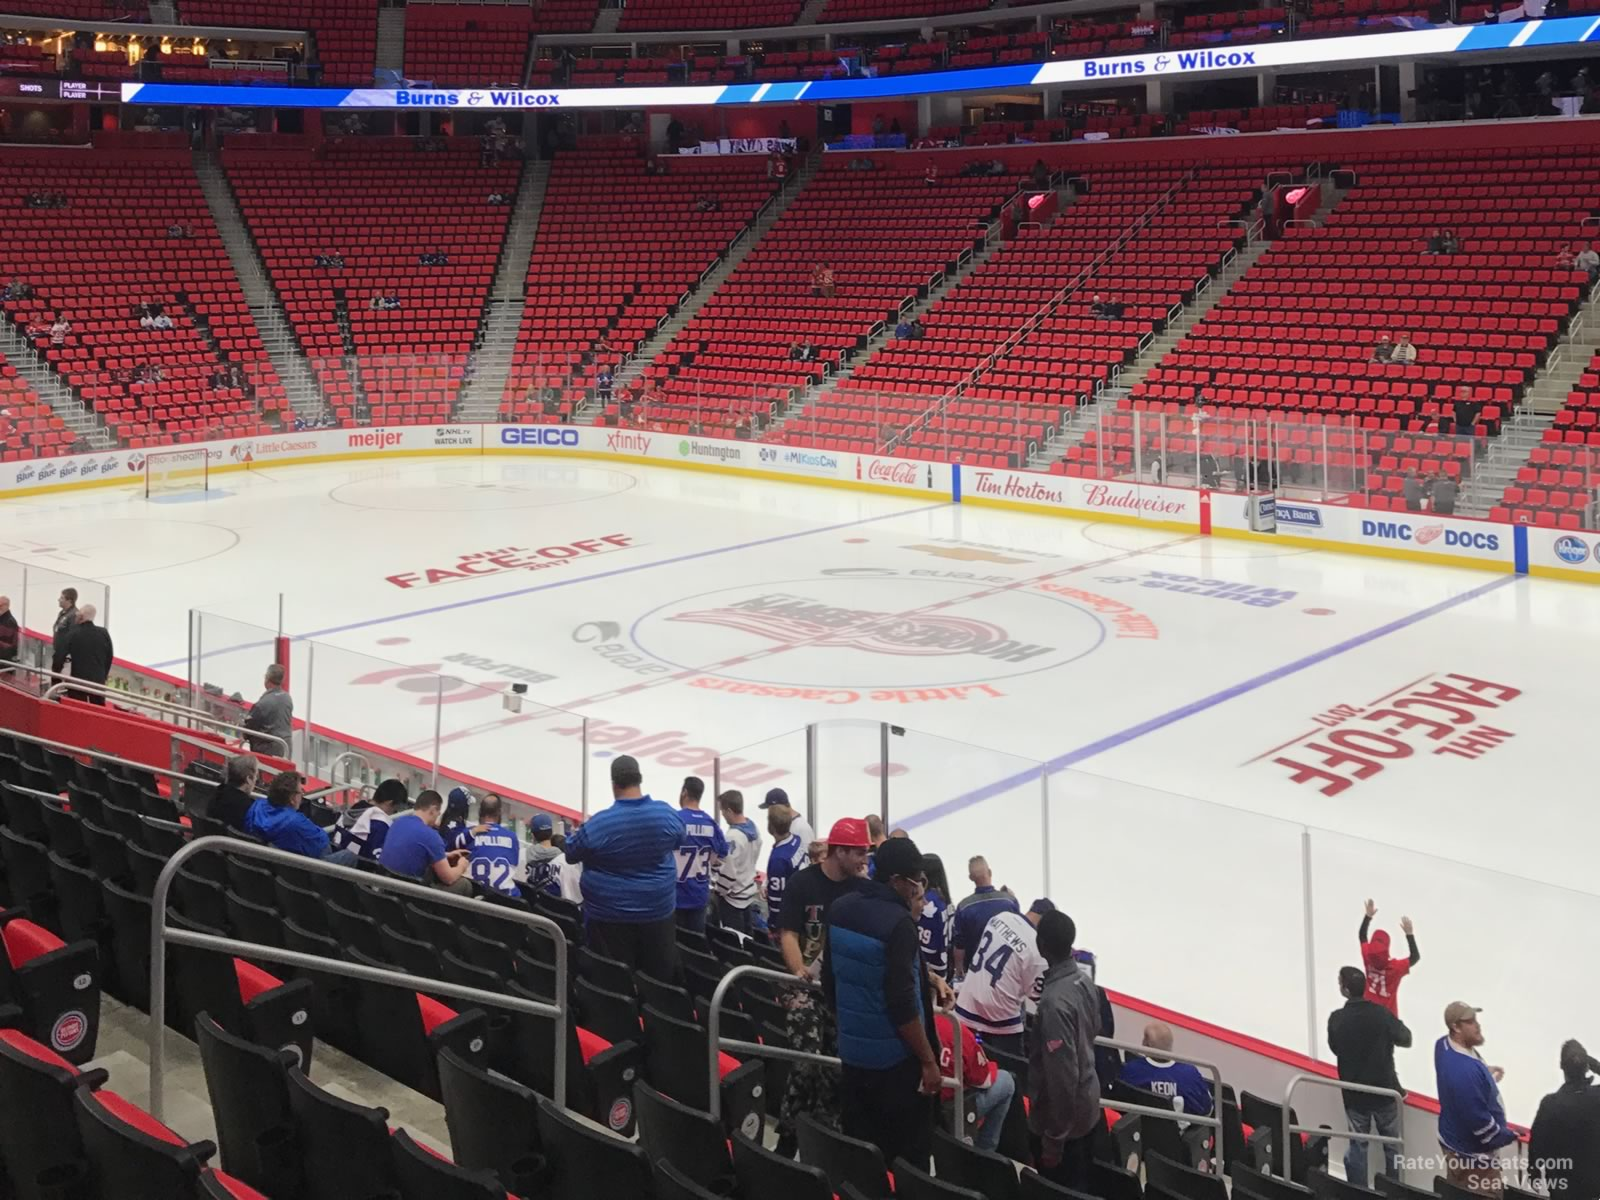 Detroit Red Wings Arena >> Little Caesars Arena Section 119 - Detroit Red Wings - RateYourSeats.com